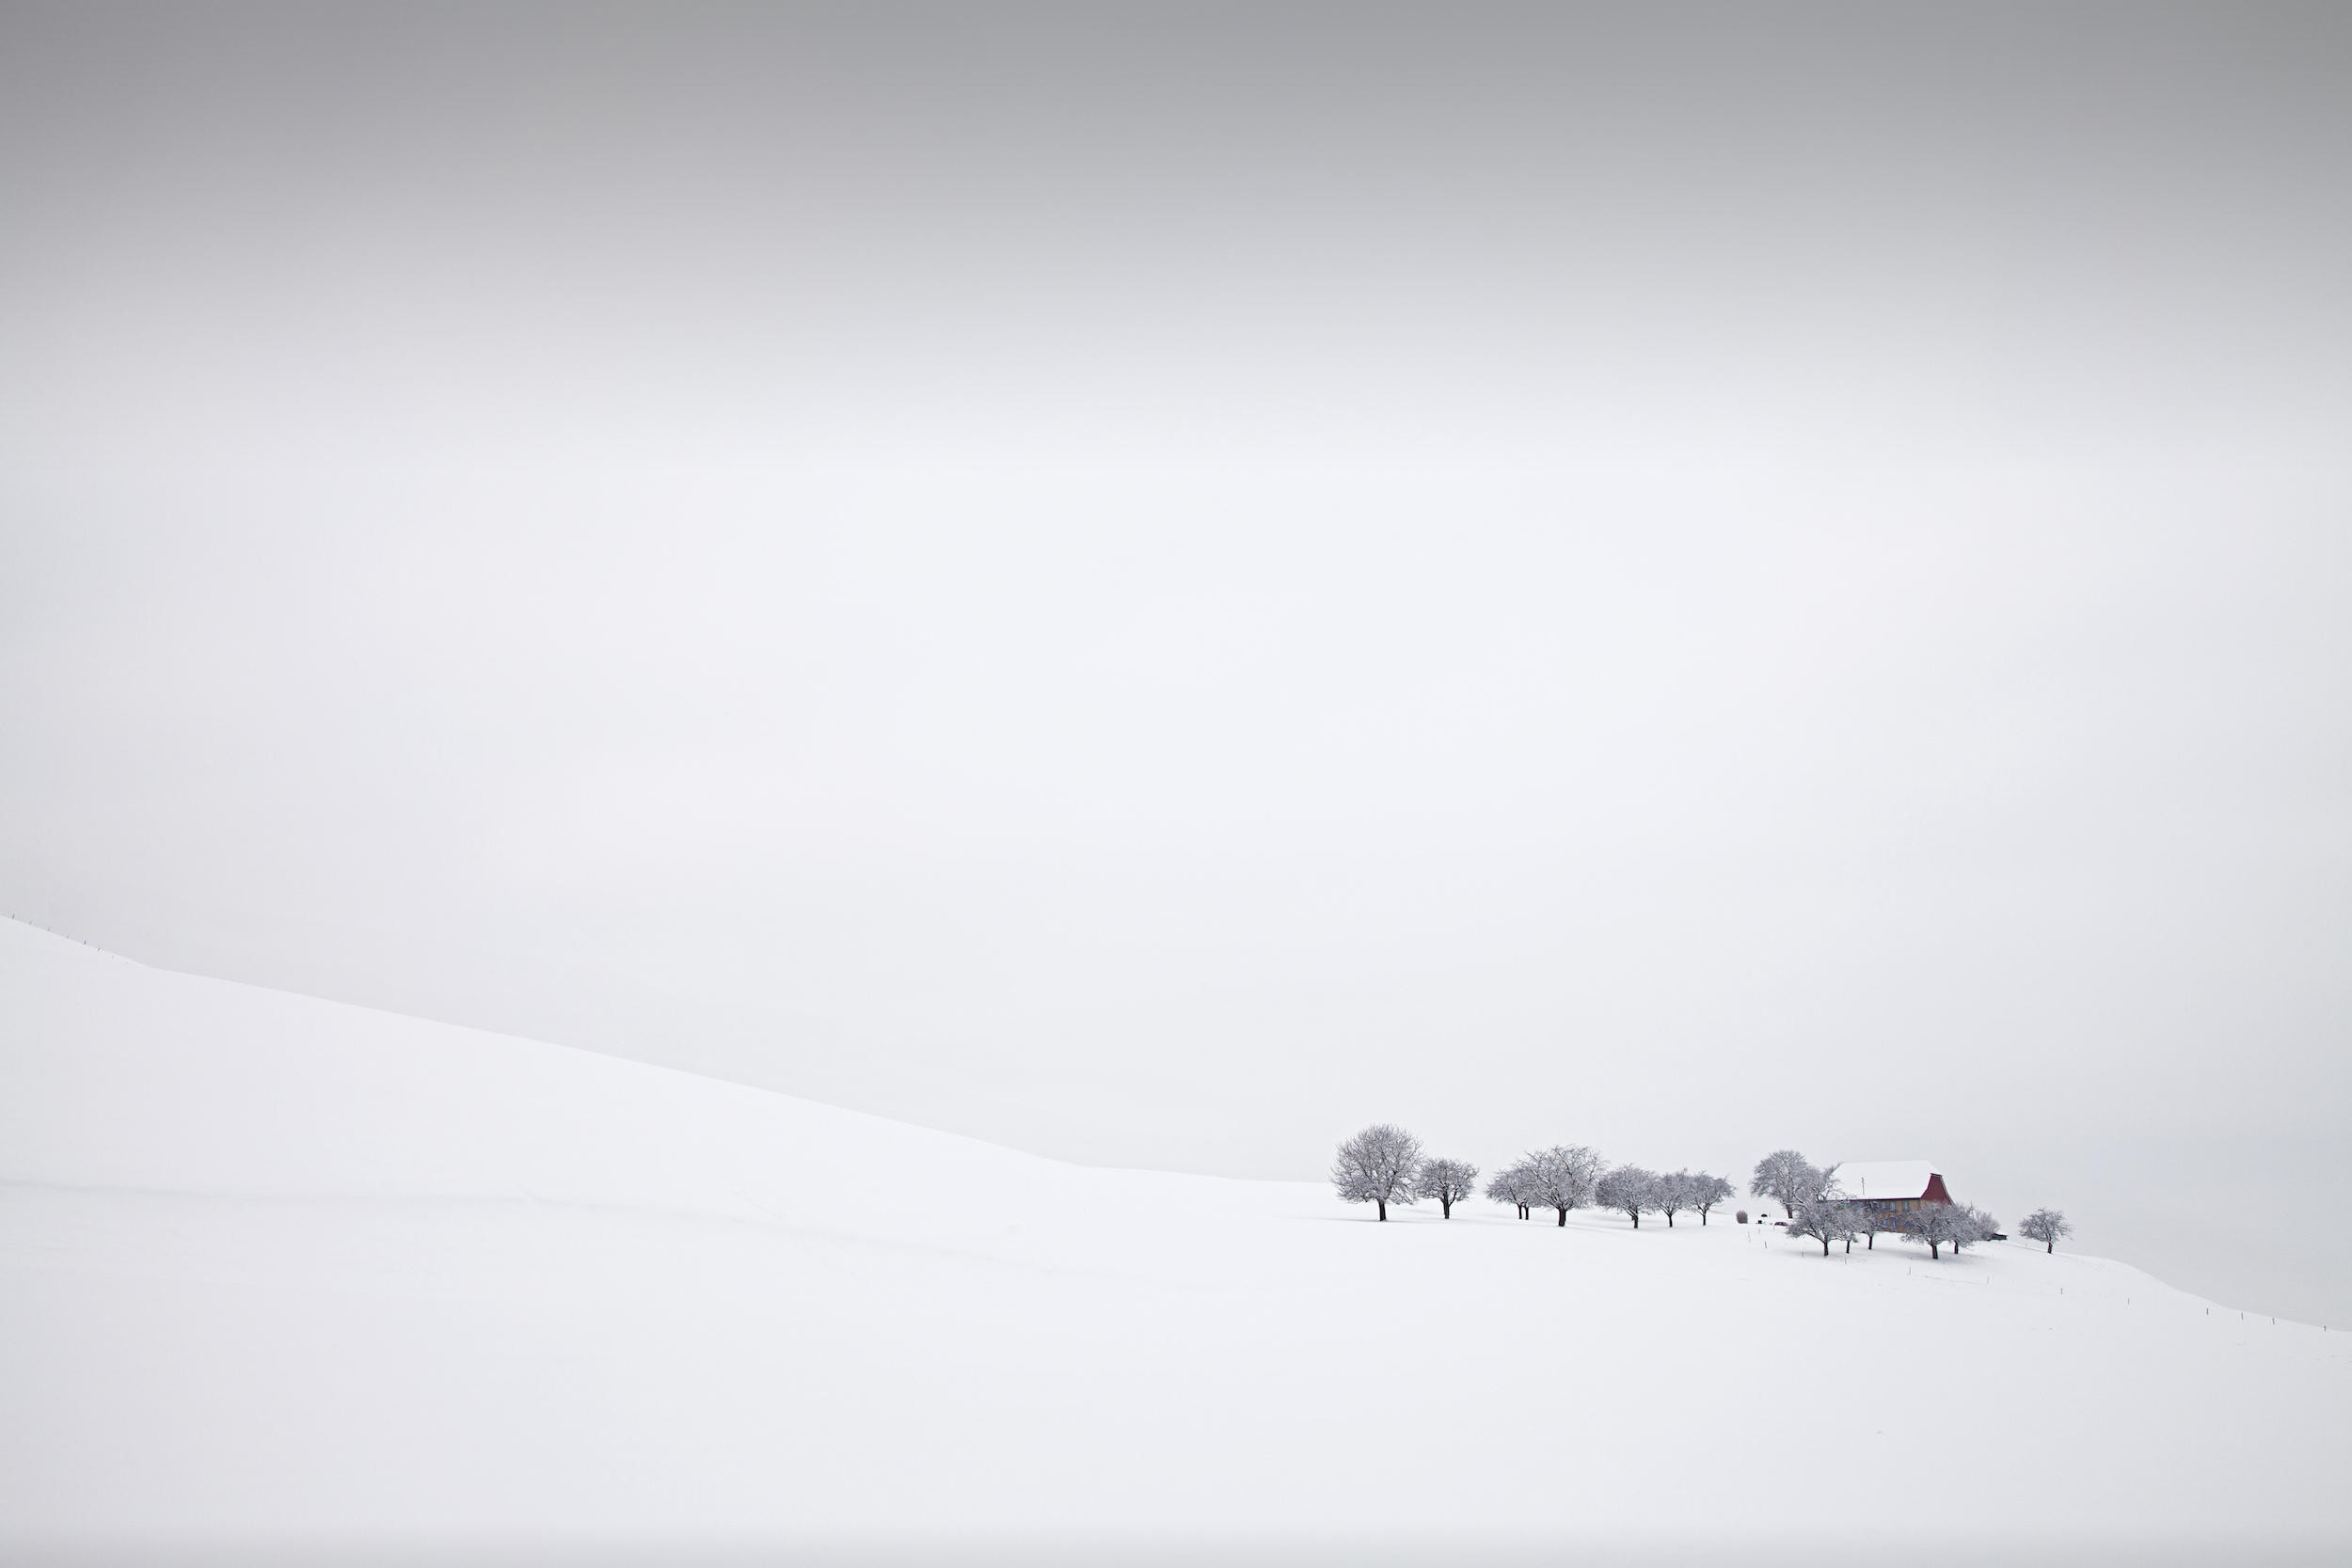 A red house and tress against a white winter landscape